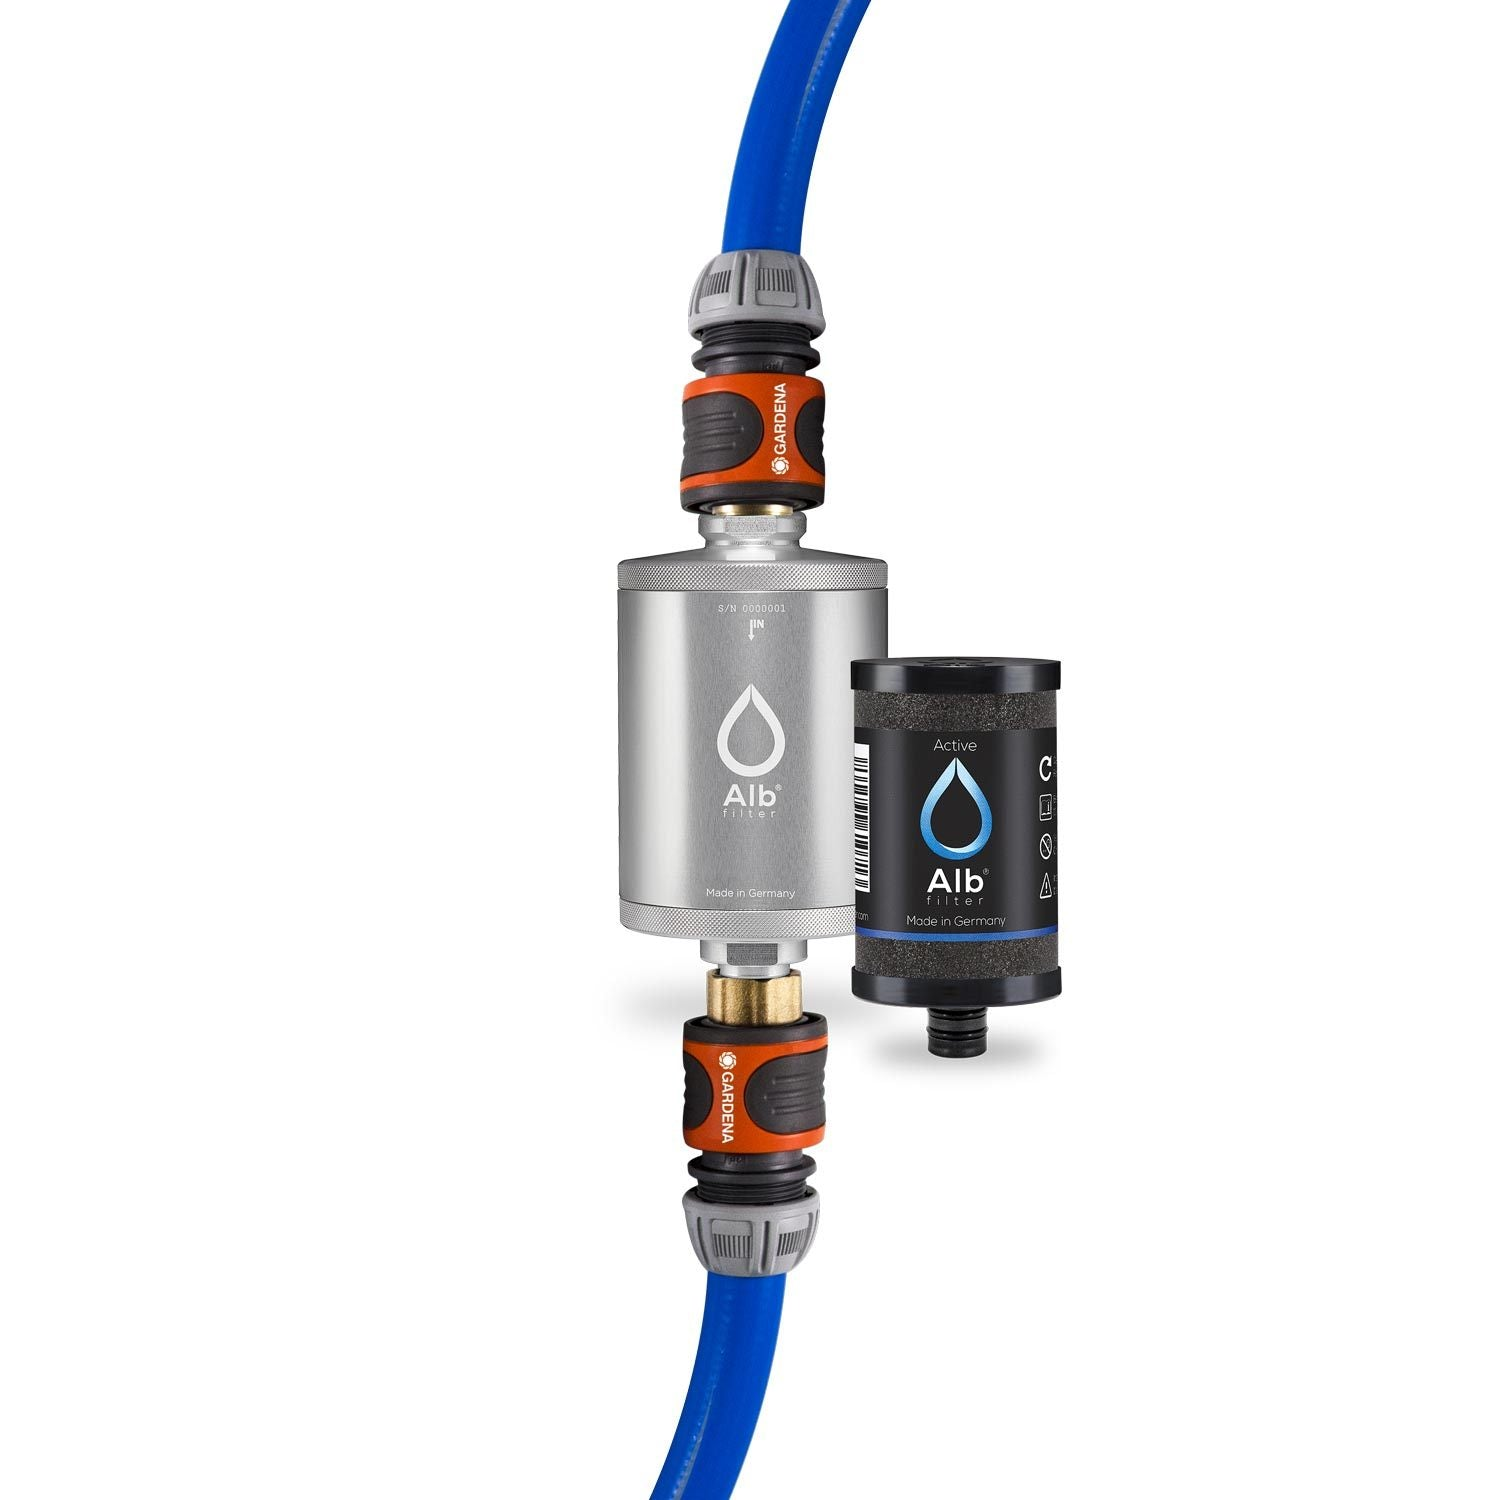 Alb Mobil drinking water filter set. Consisting of the Active drinking water filter in silver and the Gardena connection set with suitable adapters for caravans and motorhomes.